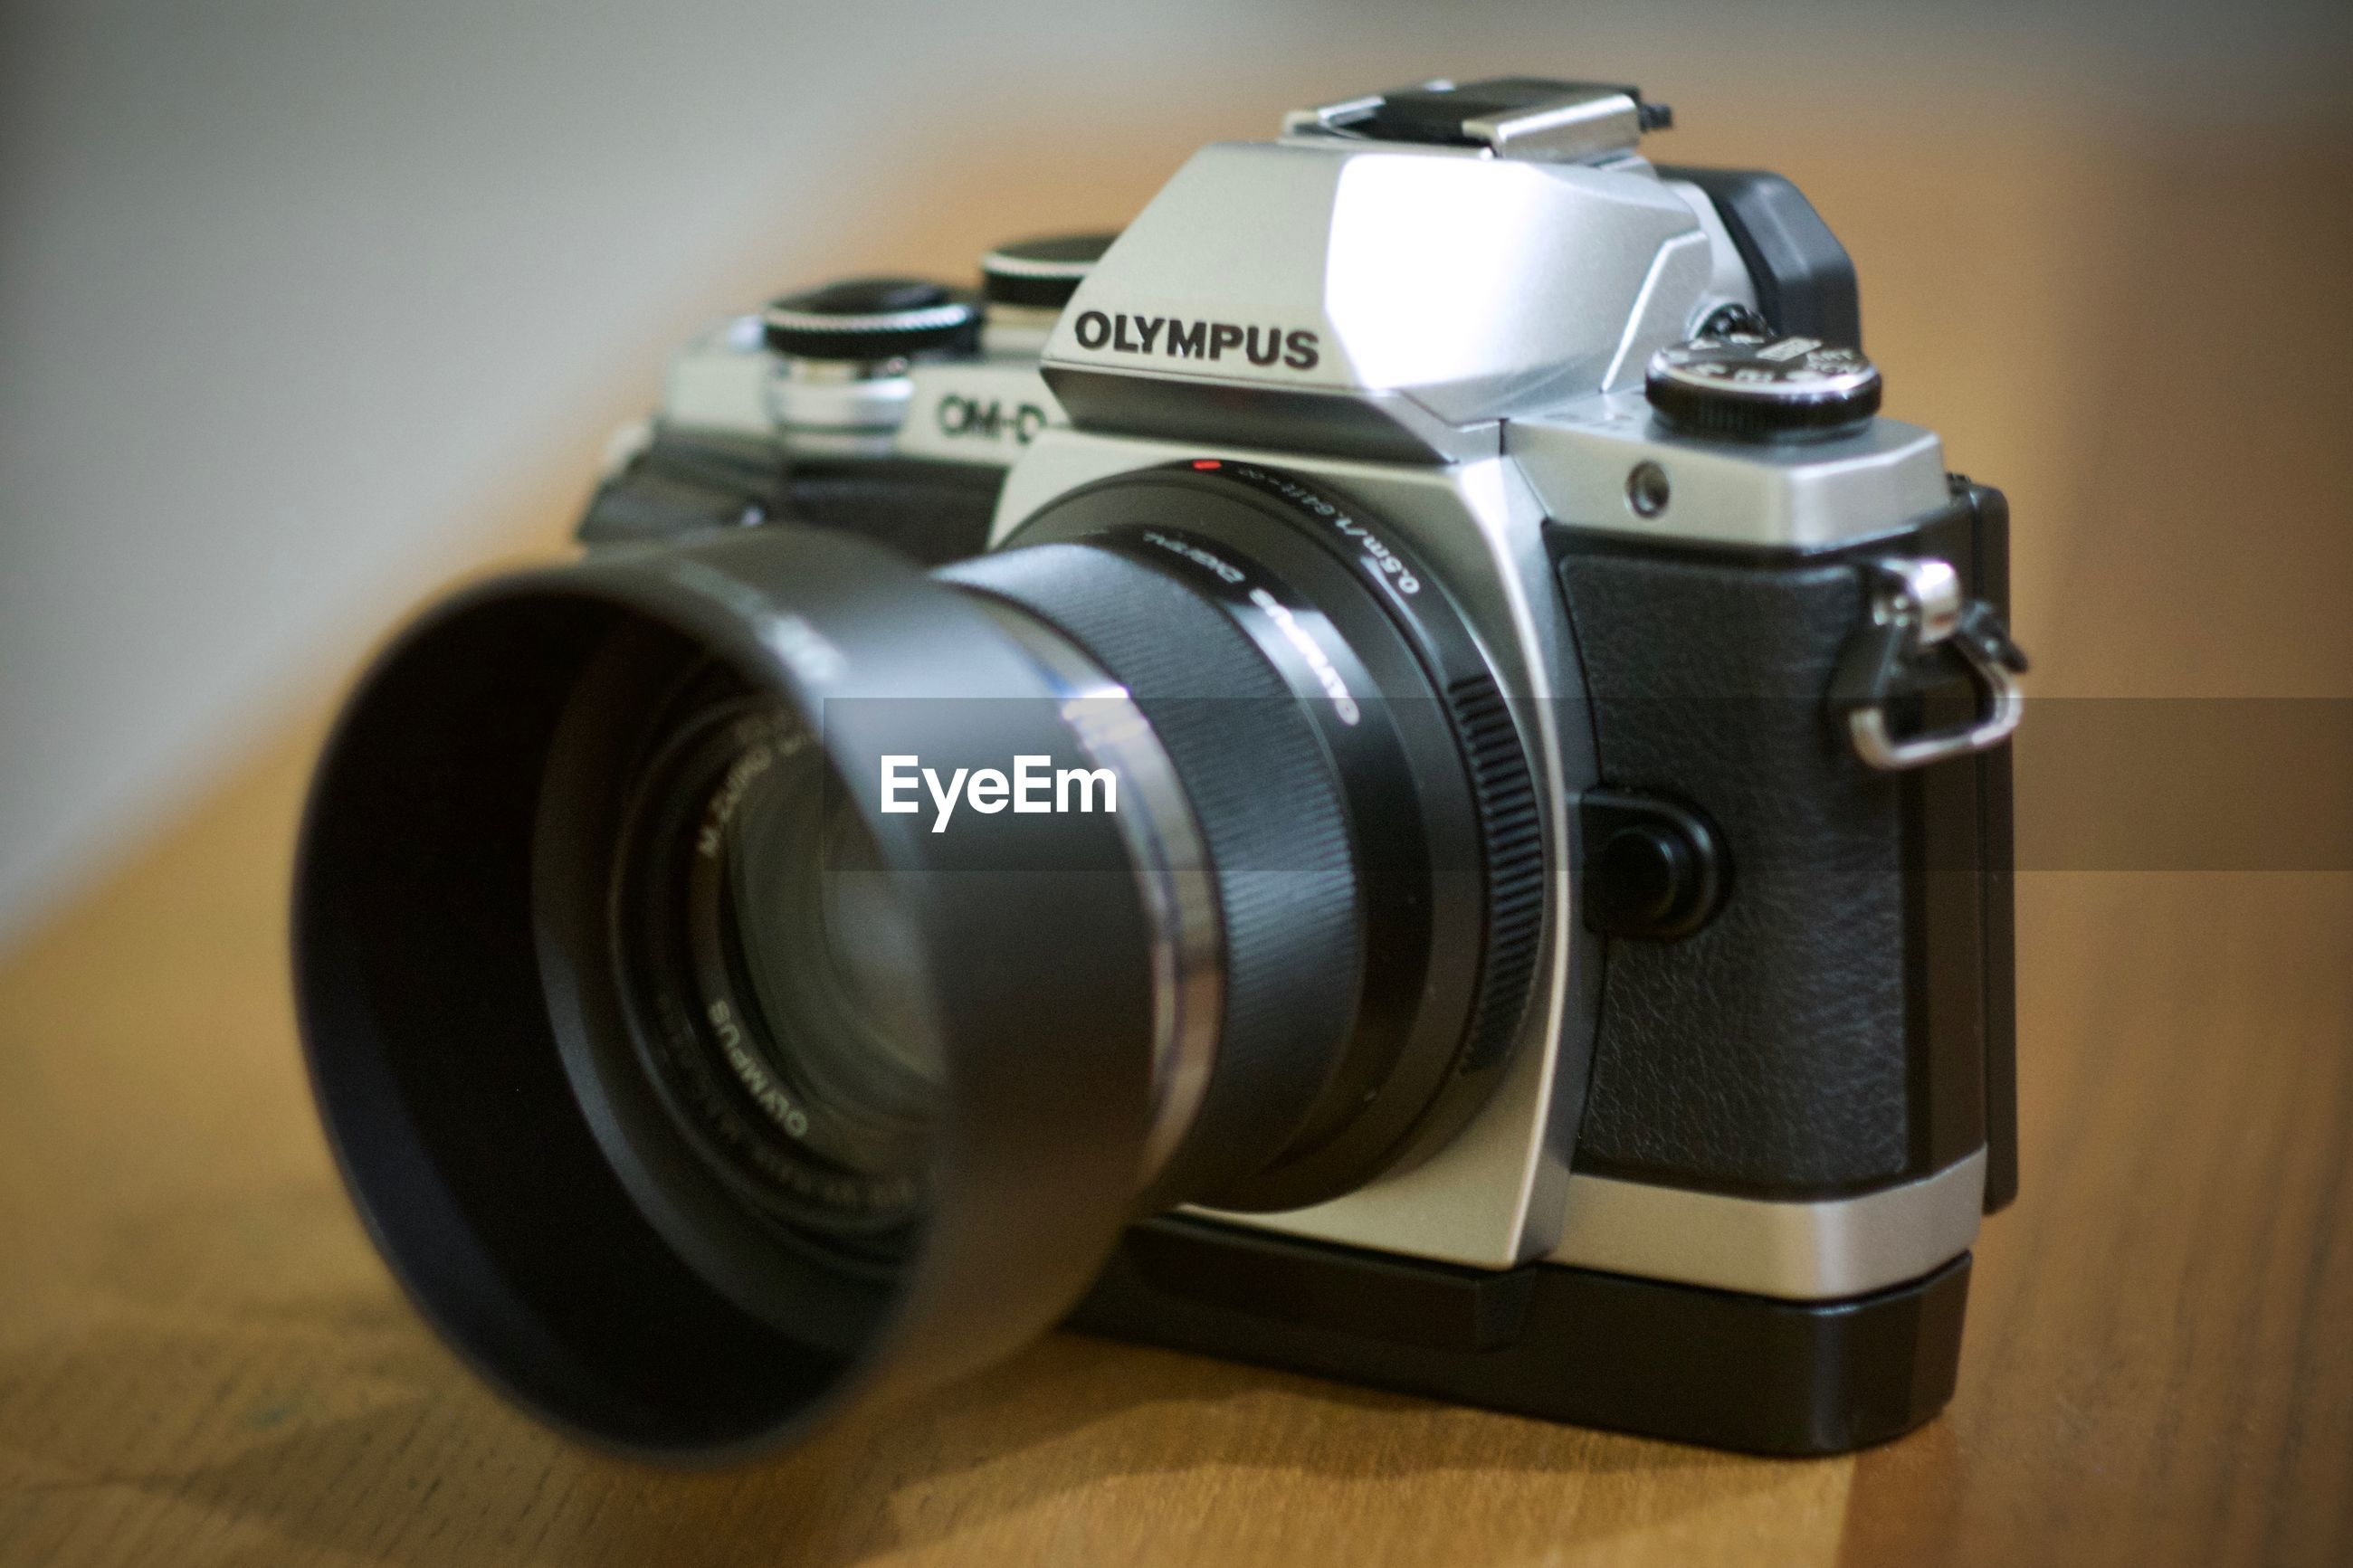 CLOSE-UP OF CAMERA ON TABLE WITH EYEGLASSES